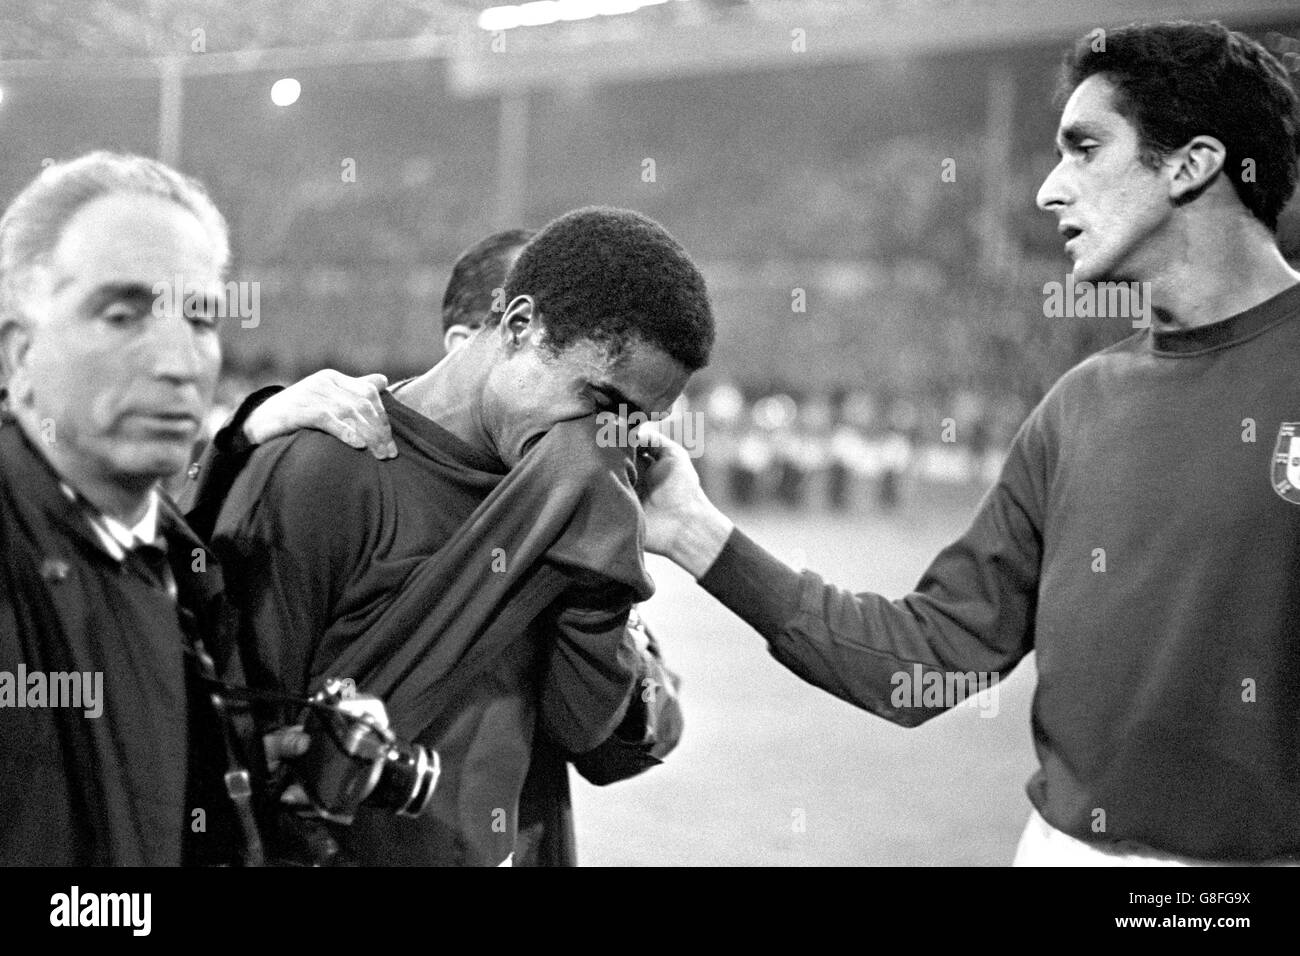 Soccer - World Cup England 1966 - Semi Final - Portugal v England - Wembley Stadium - Stock Image